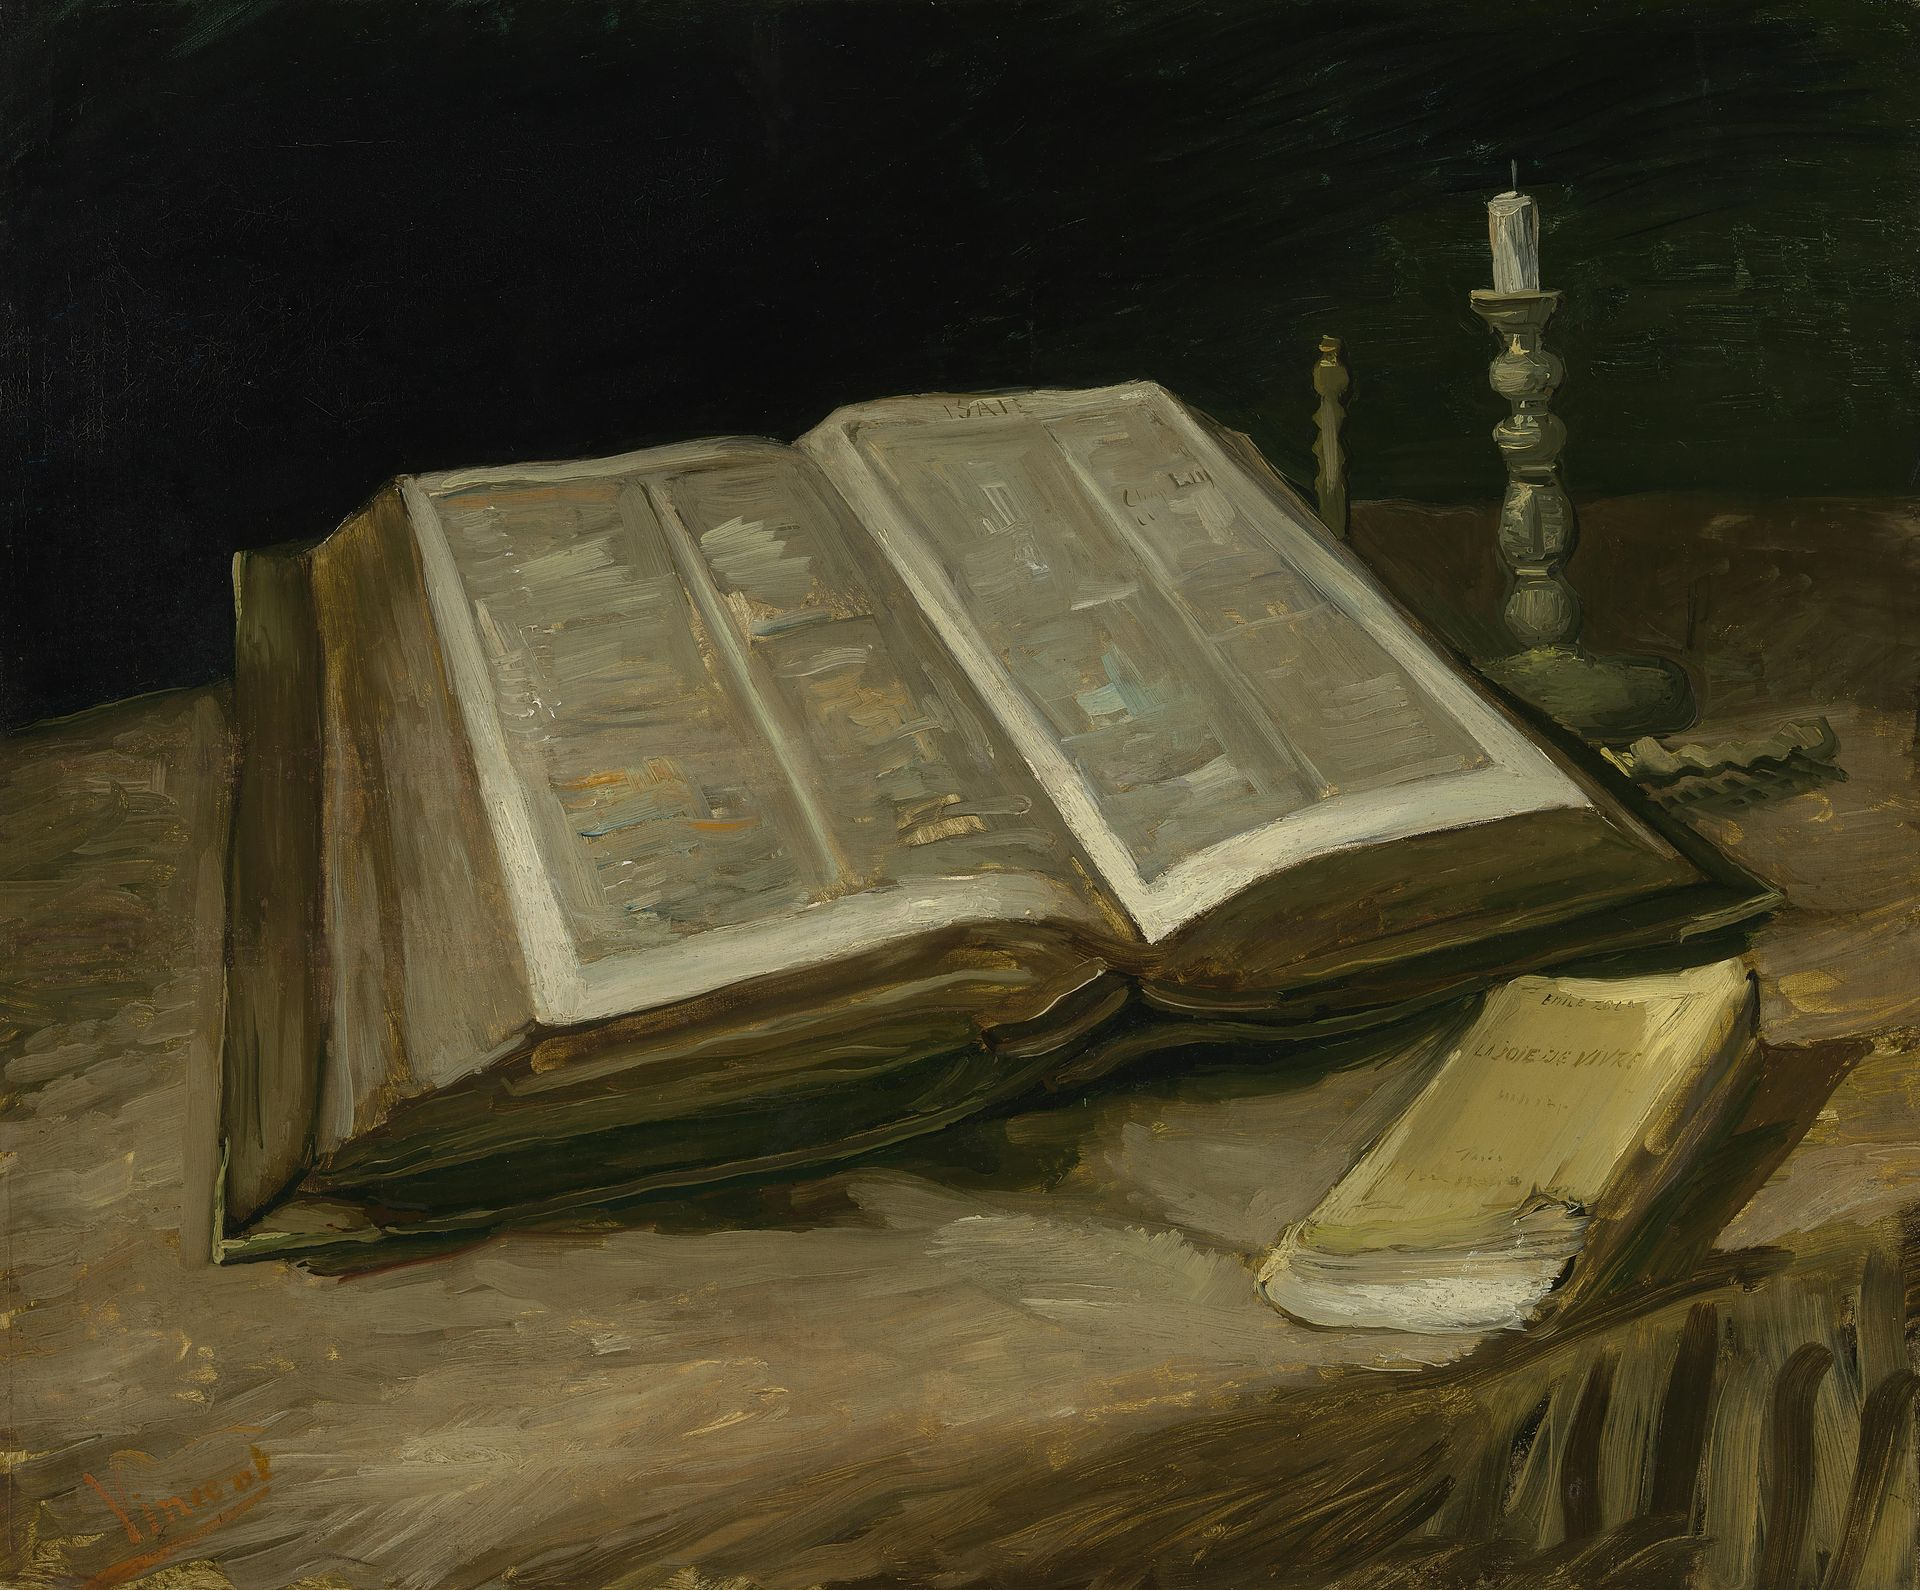 An image of a large opened bible on a table top